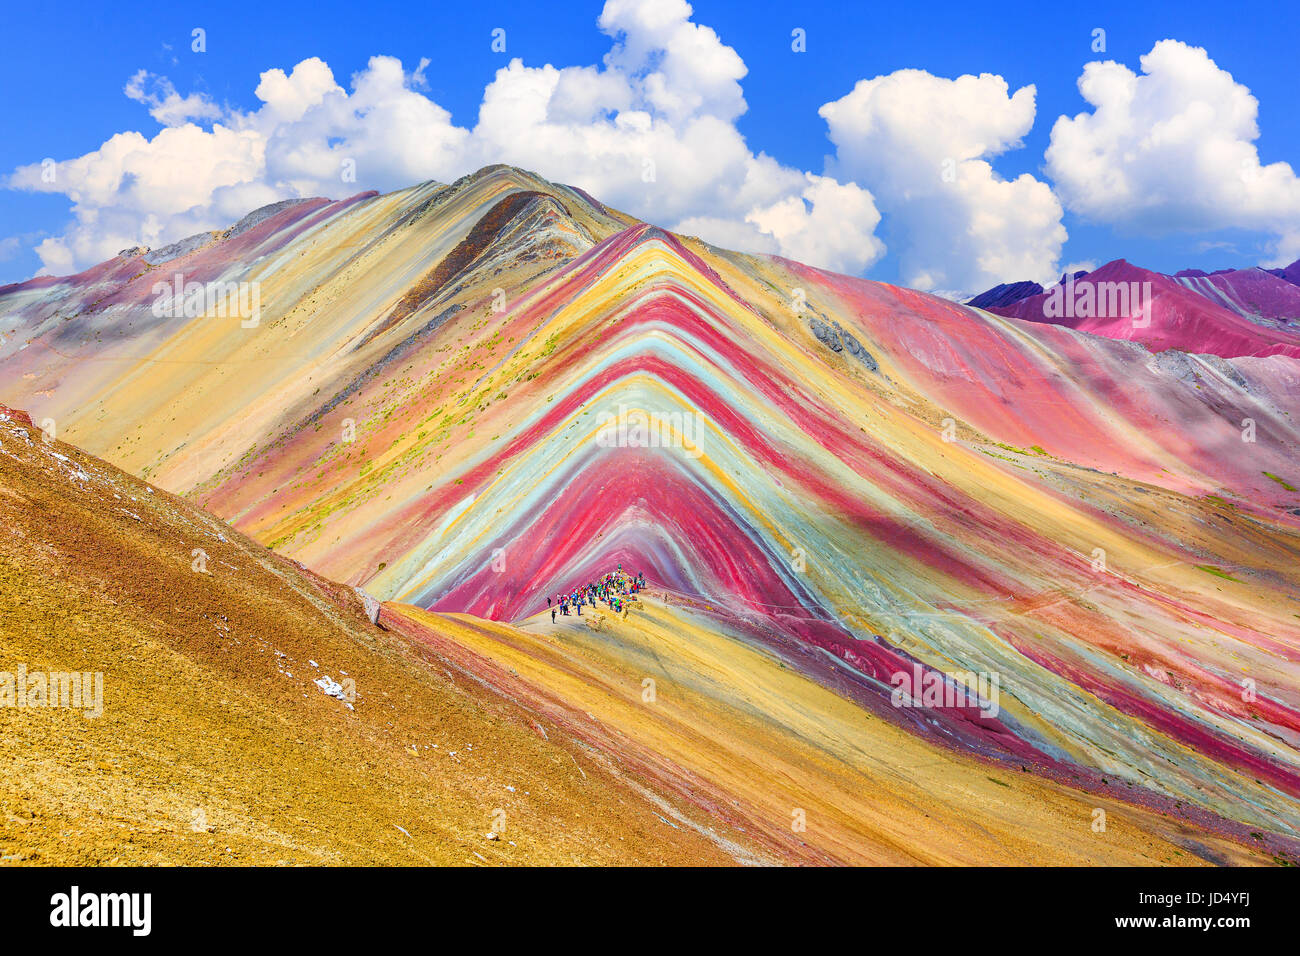 Vinicunca, Cusco Region, Peru. Montana de Siete Colores, or Rainbow Mountain. - Stock Image